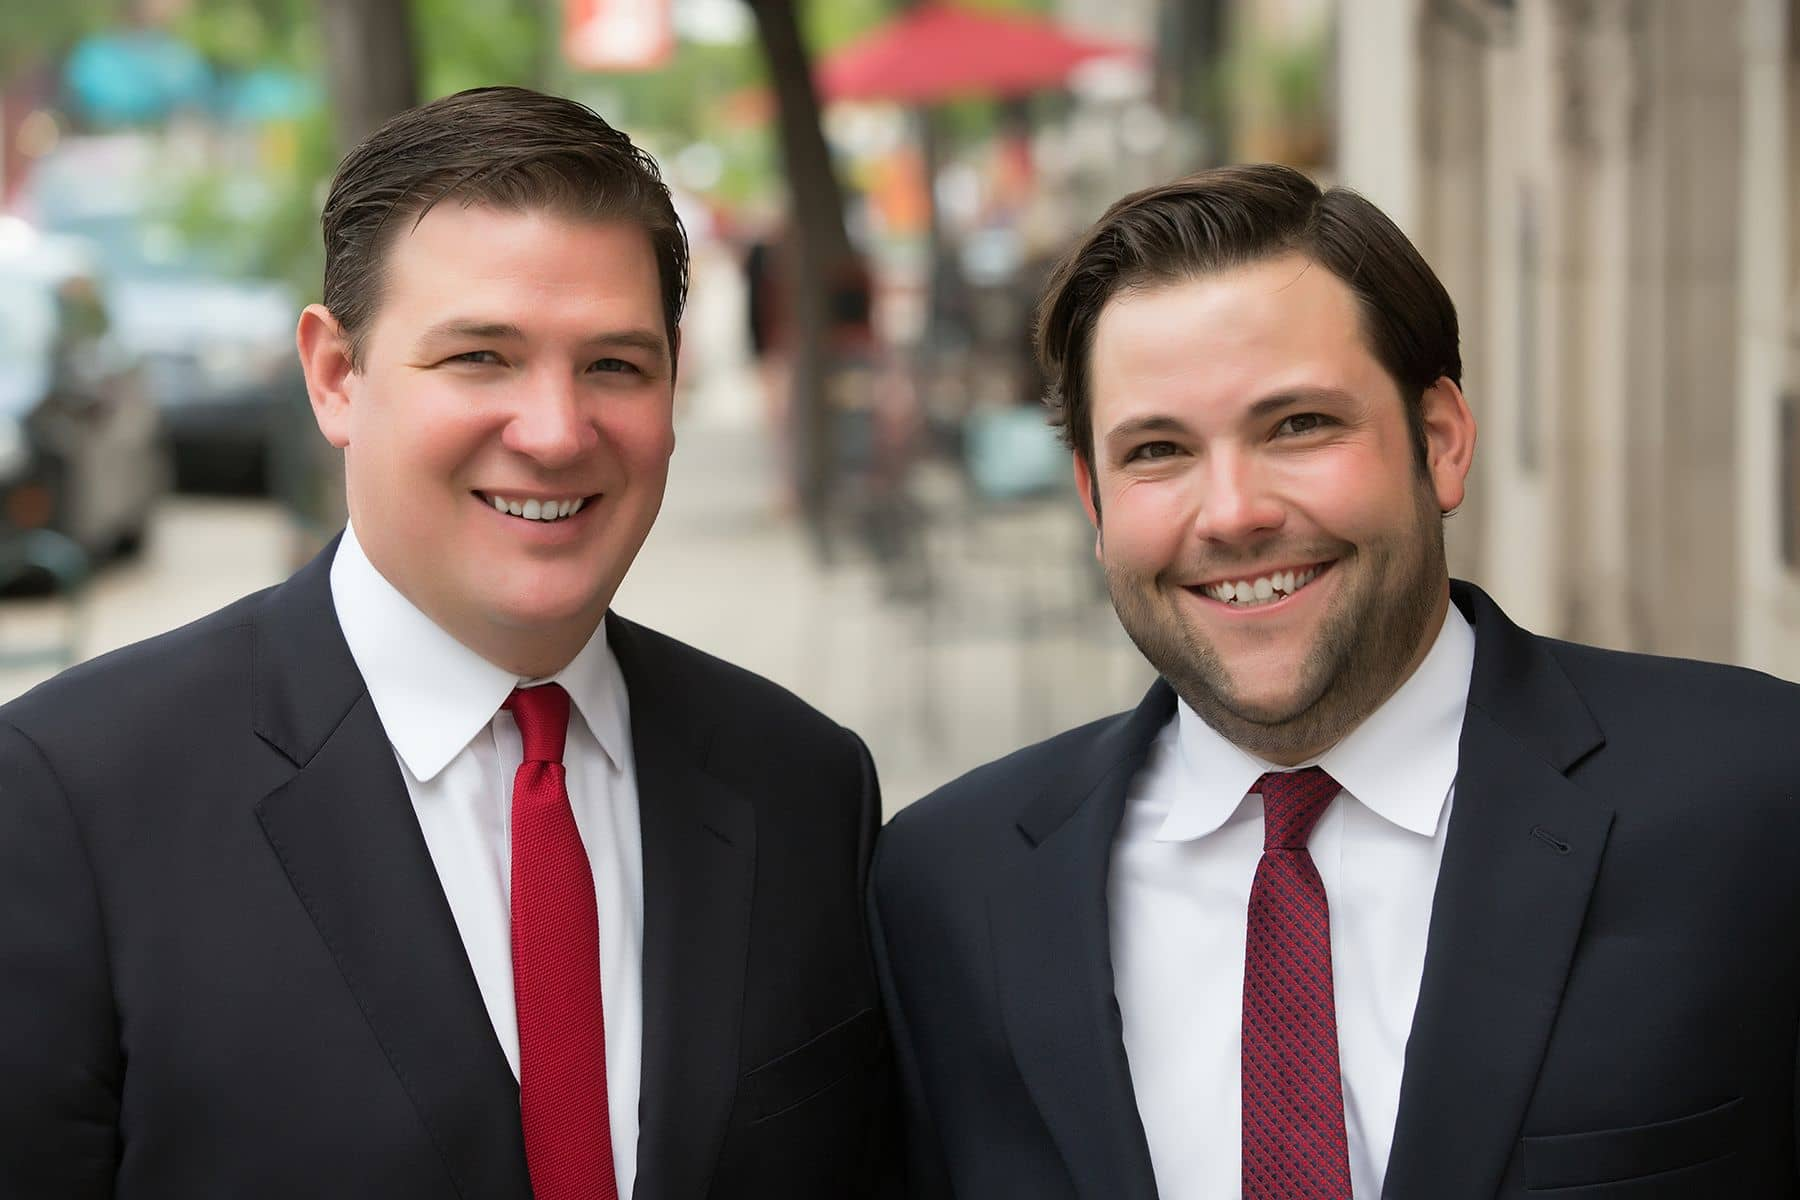 Reeves D Whalen and Graham D Hersh, Colorado's Premier Personal Injury Attorneys